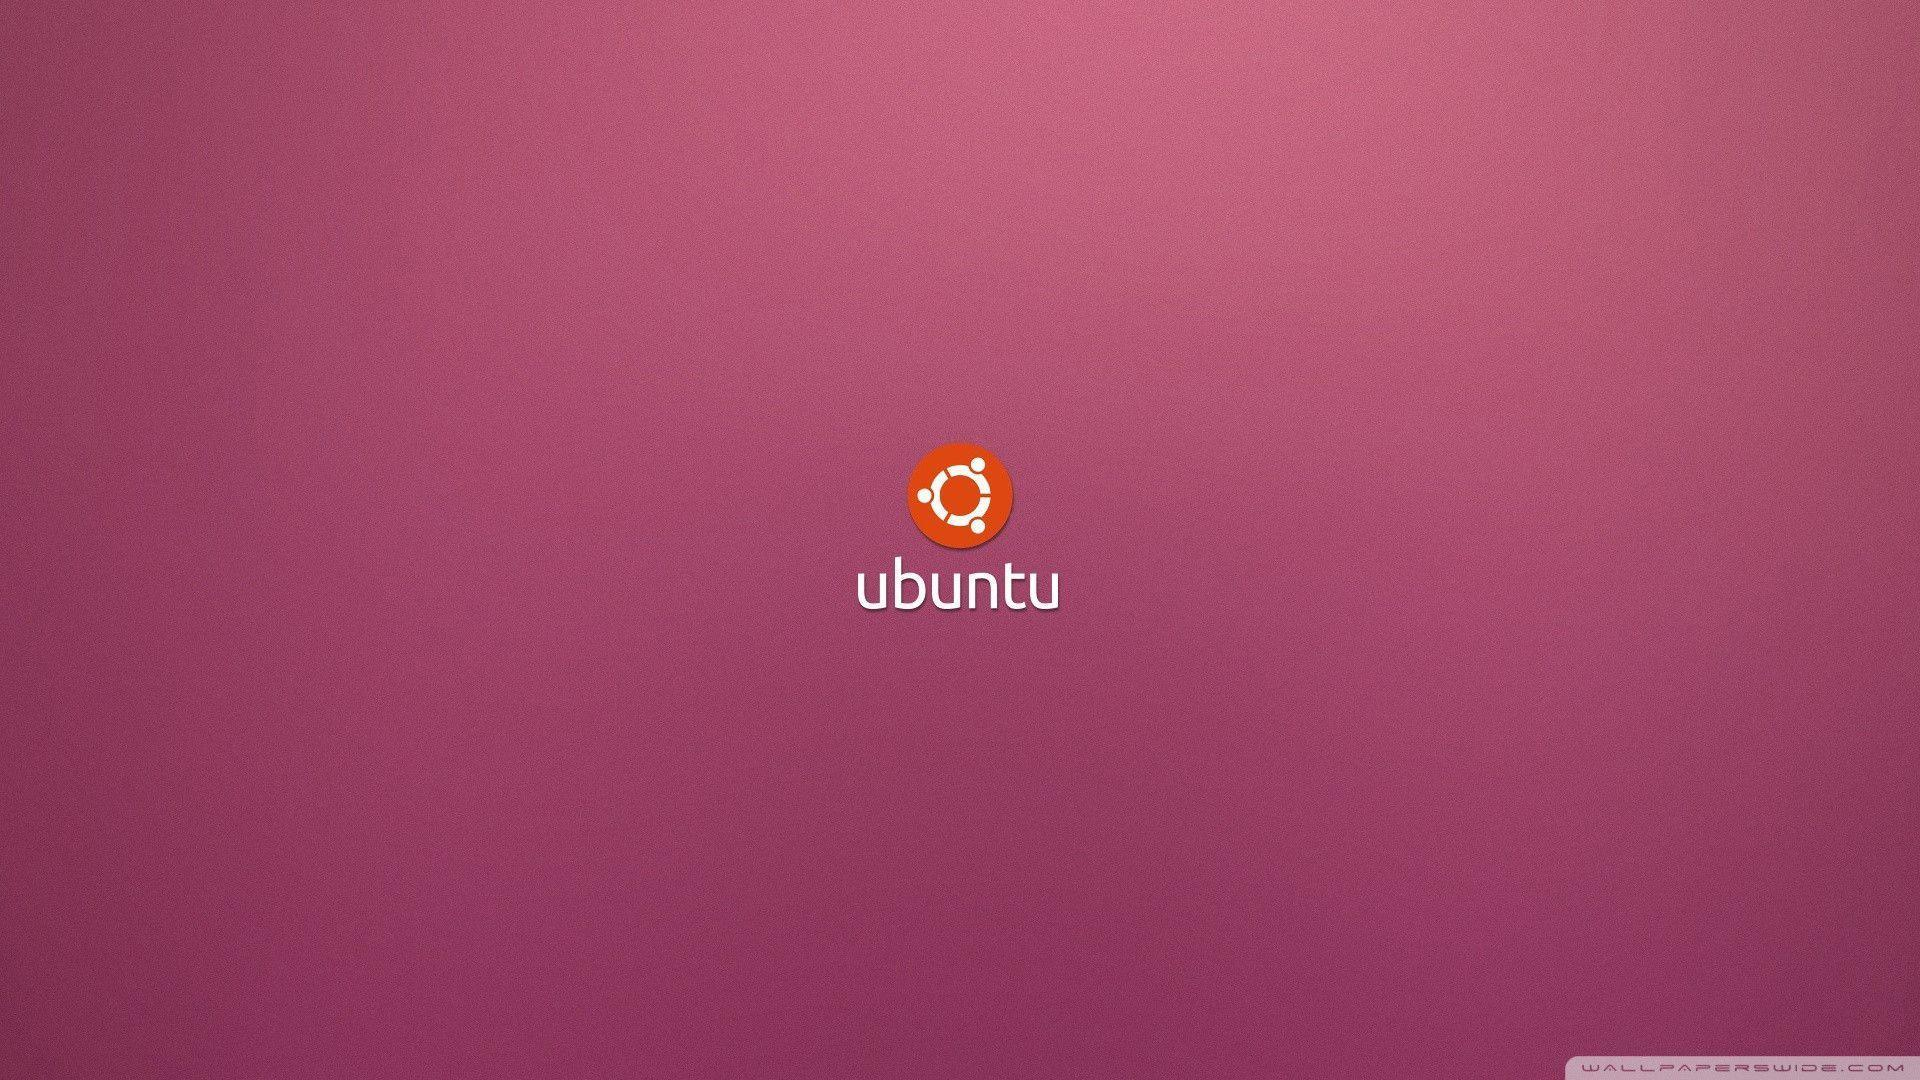 Ubuntu Desktop Backgrounds 1920x1080